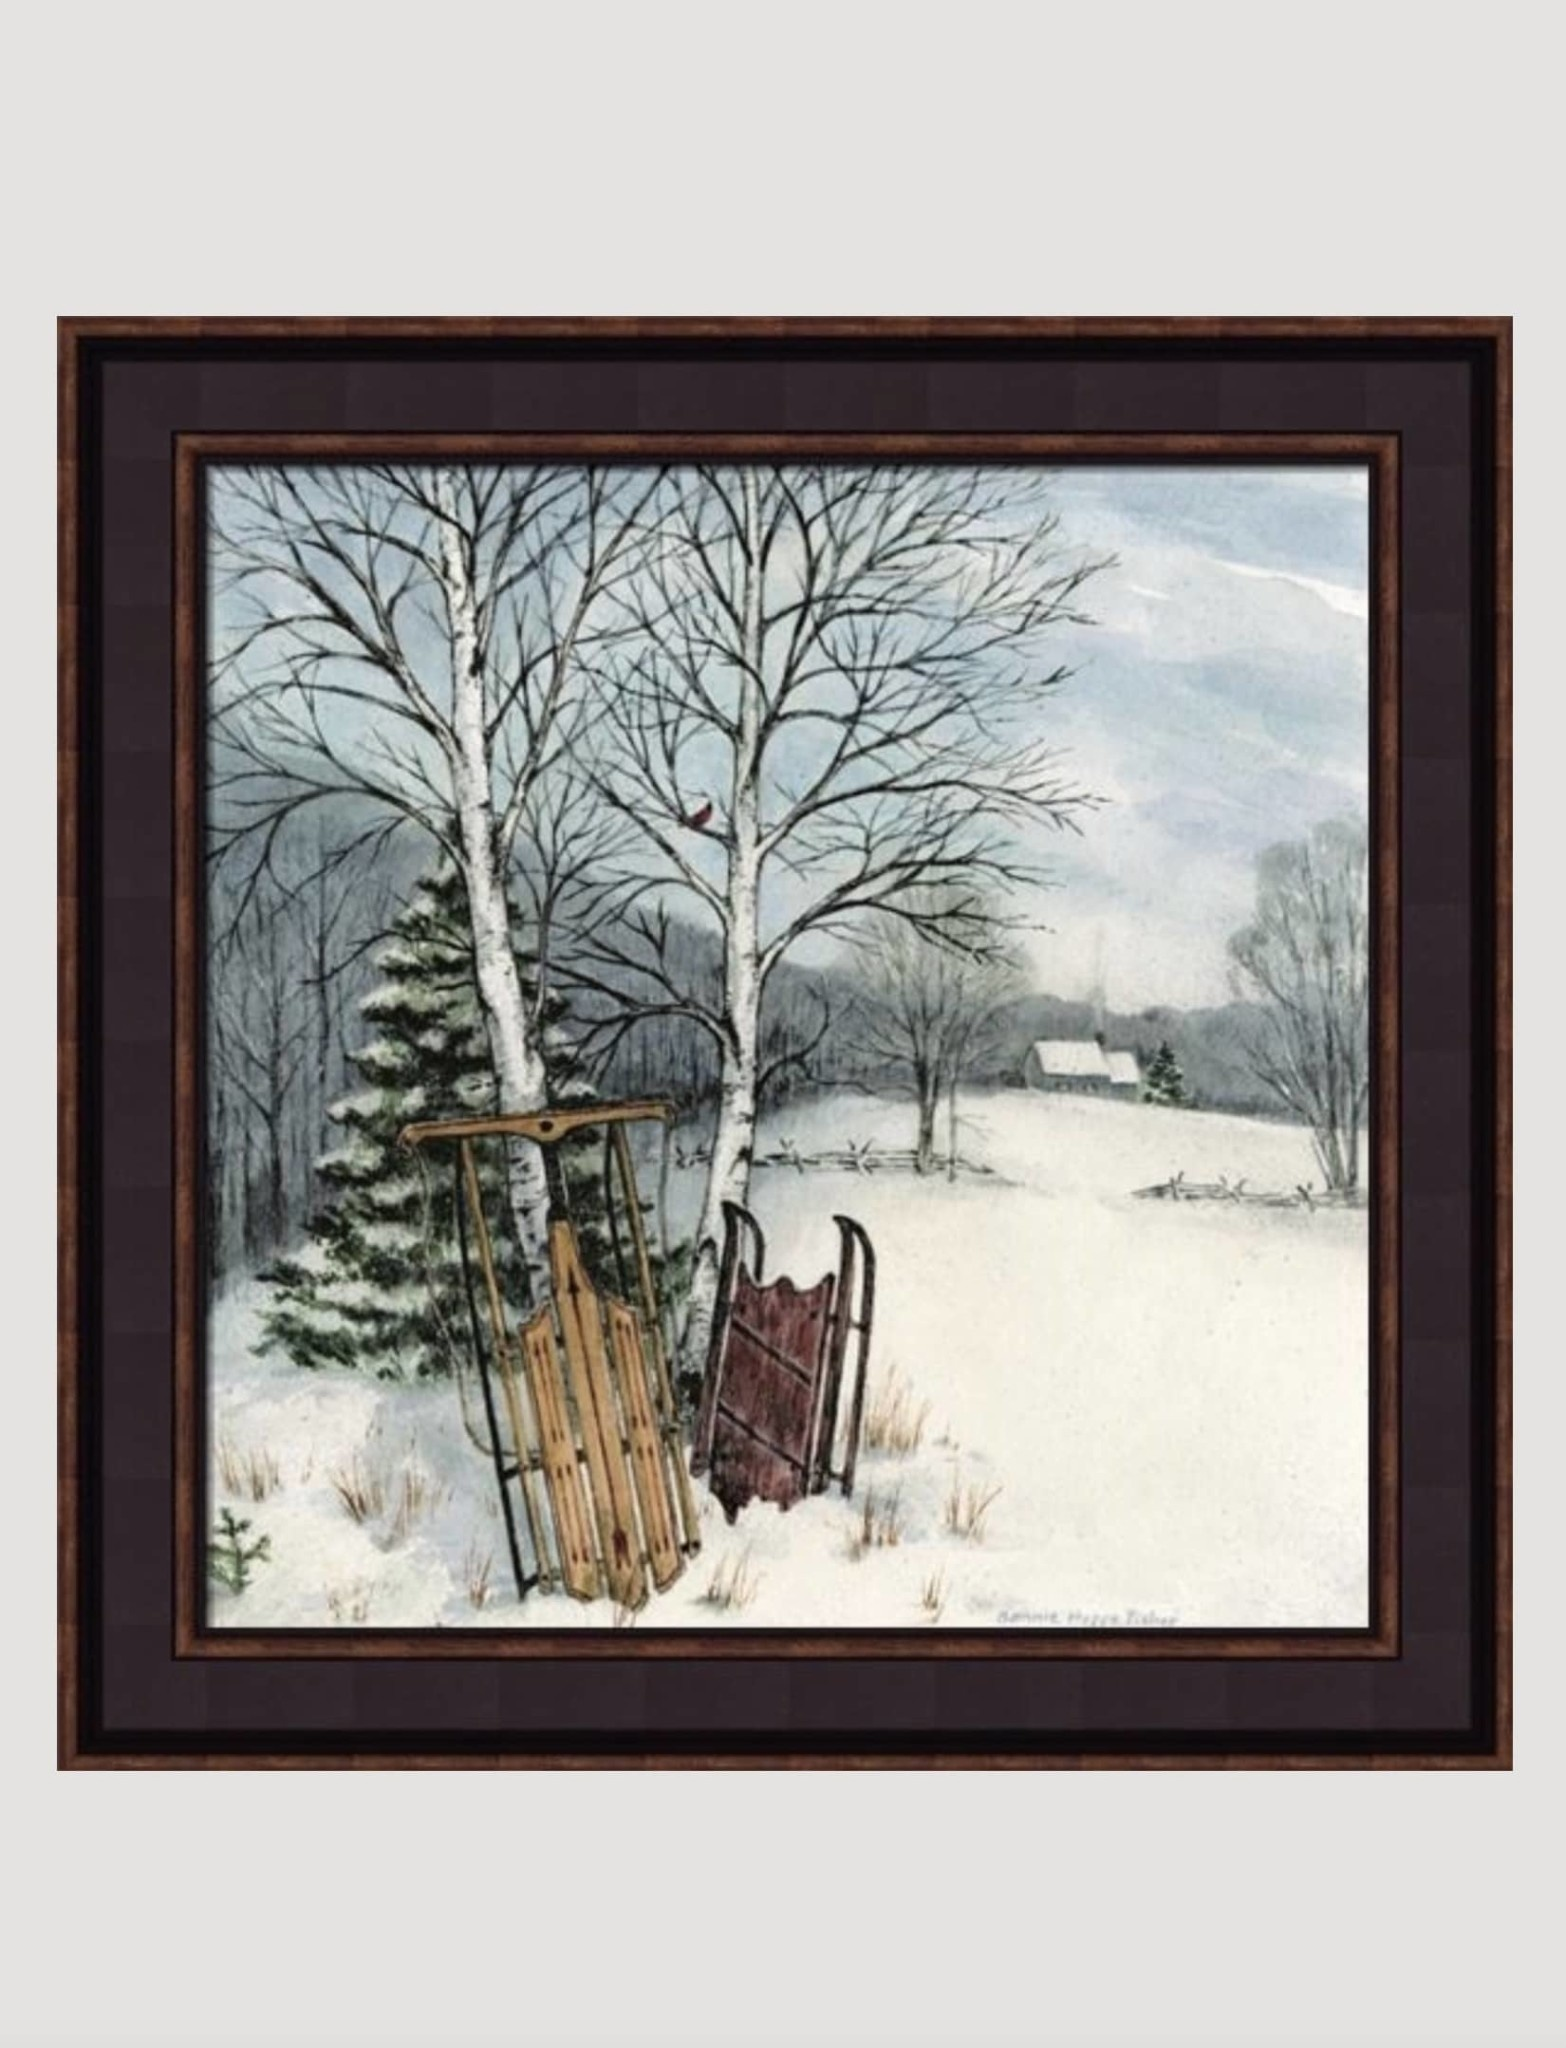 Two Sleds by Bonnie Fisher